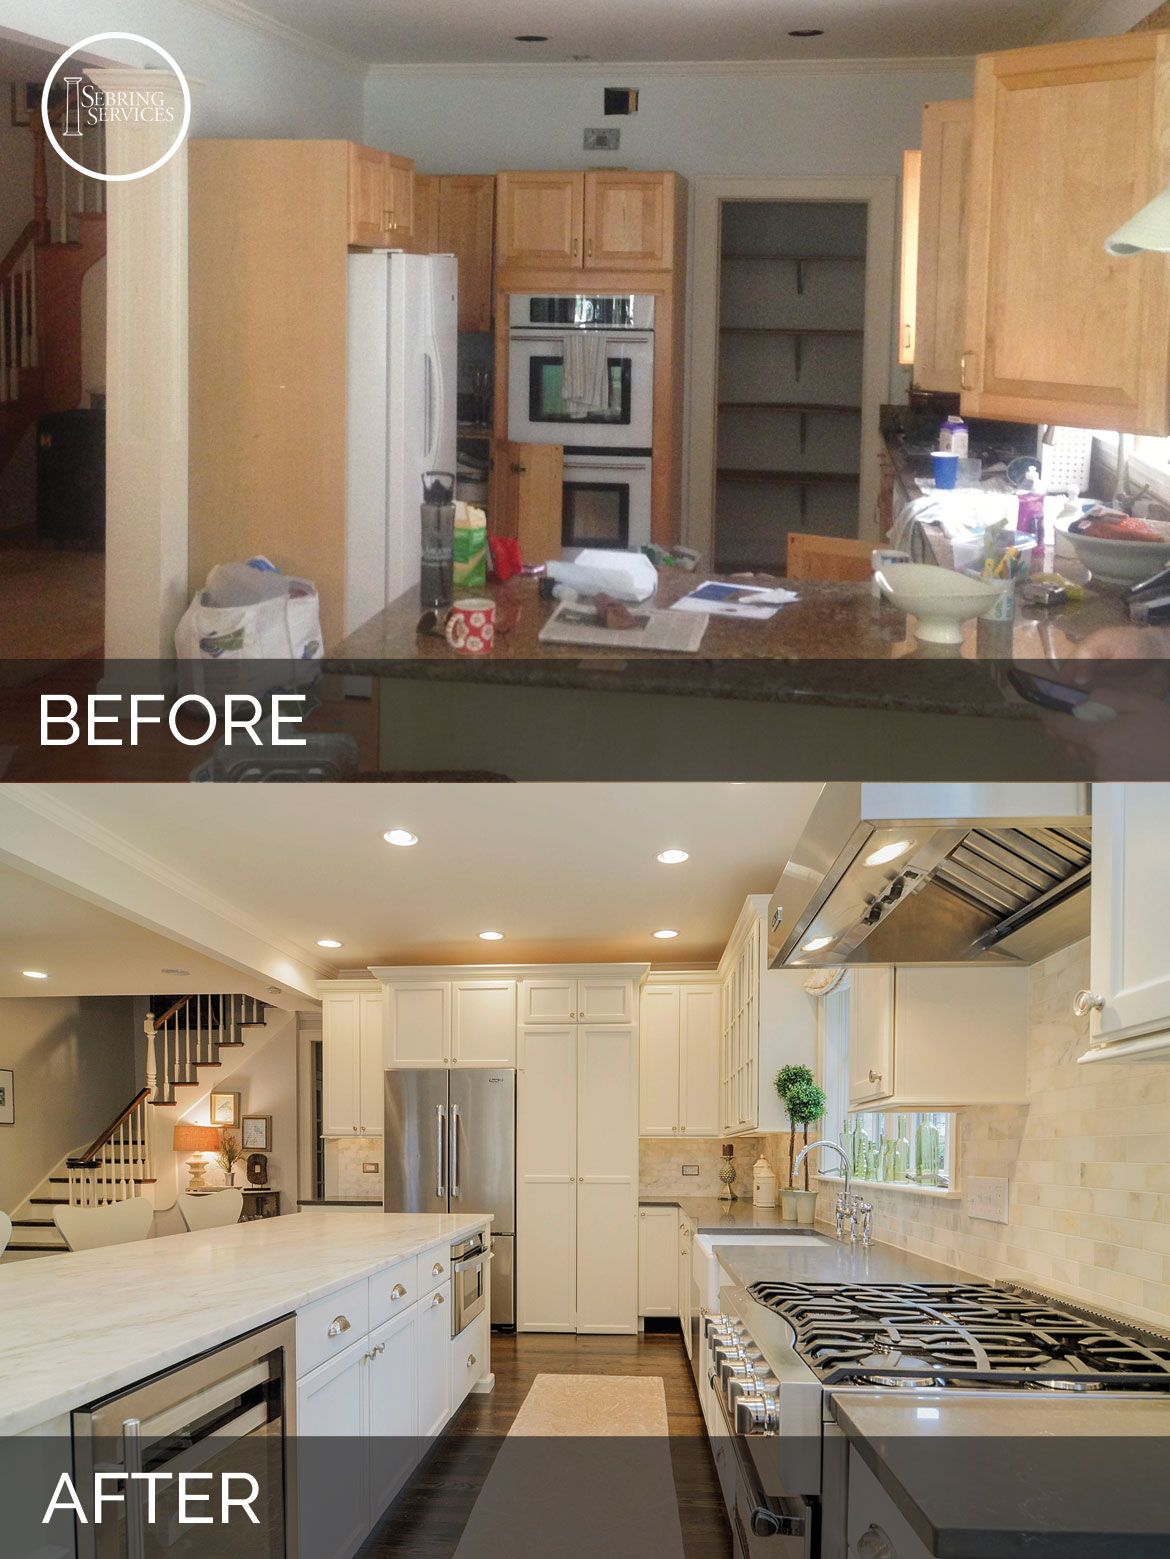 Ben ellen 39 s kitchen before after pictures kitchens - Remodeling a small kitchen before and after ...